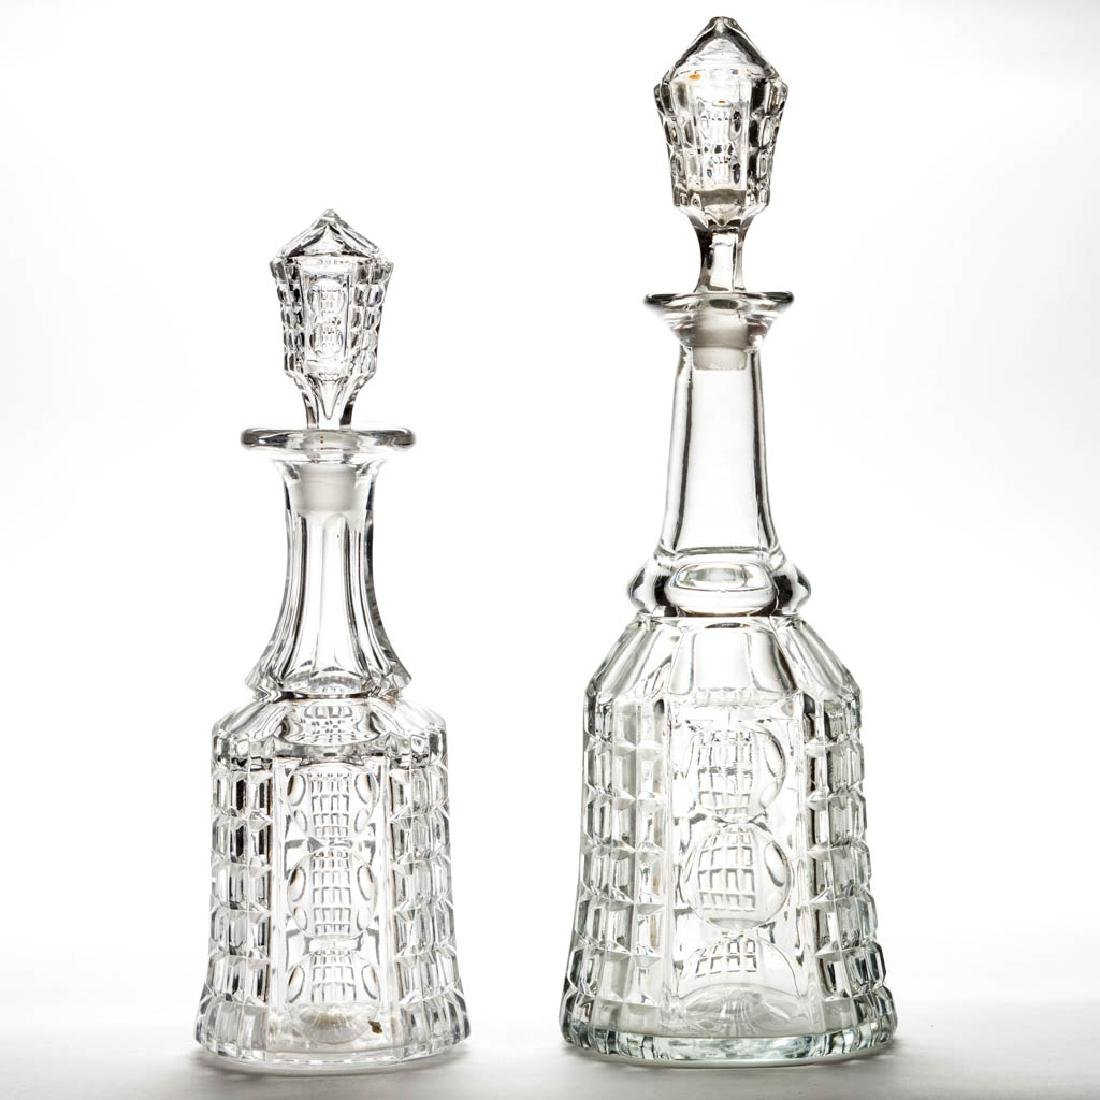 WAFFLE AND THUMBPRINT / PALACE (OMN) DECANTERS, LOT OF